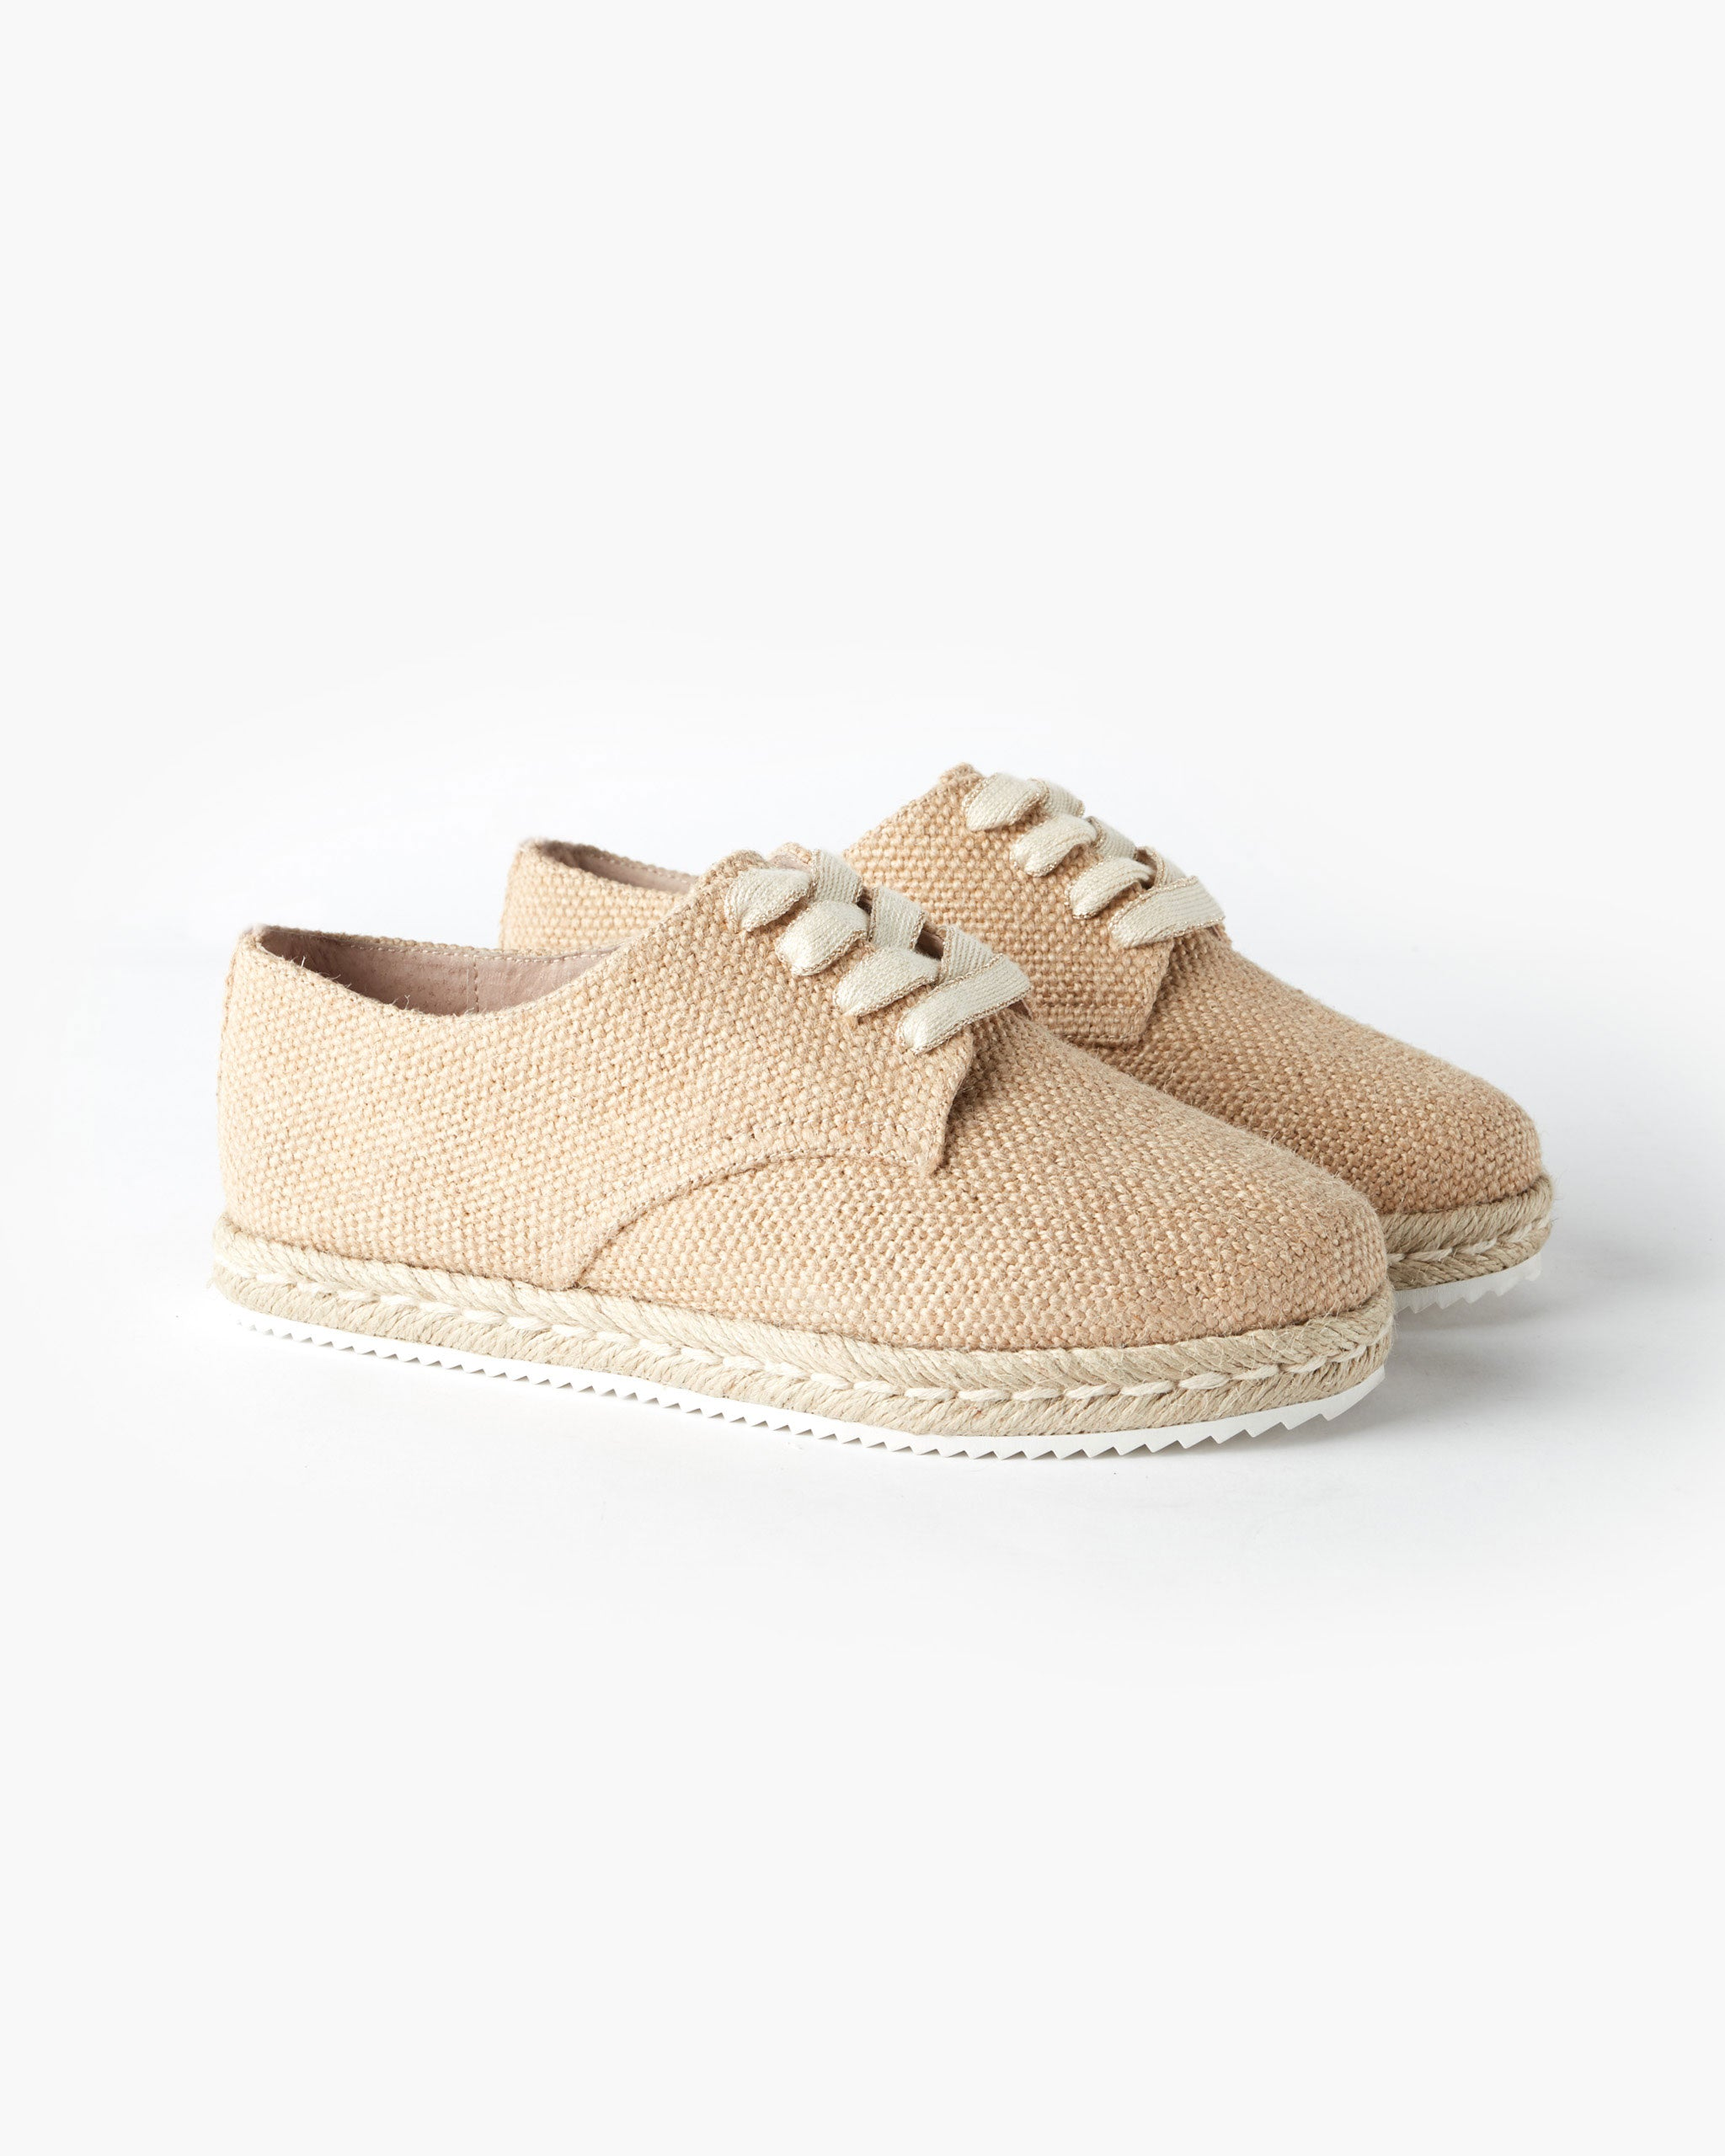 Giselle Canvas Lace Up Espadrille - Tan